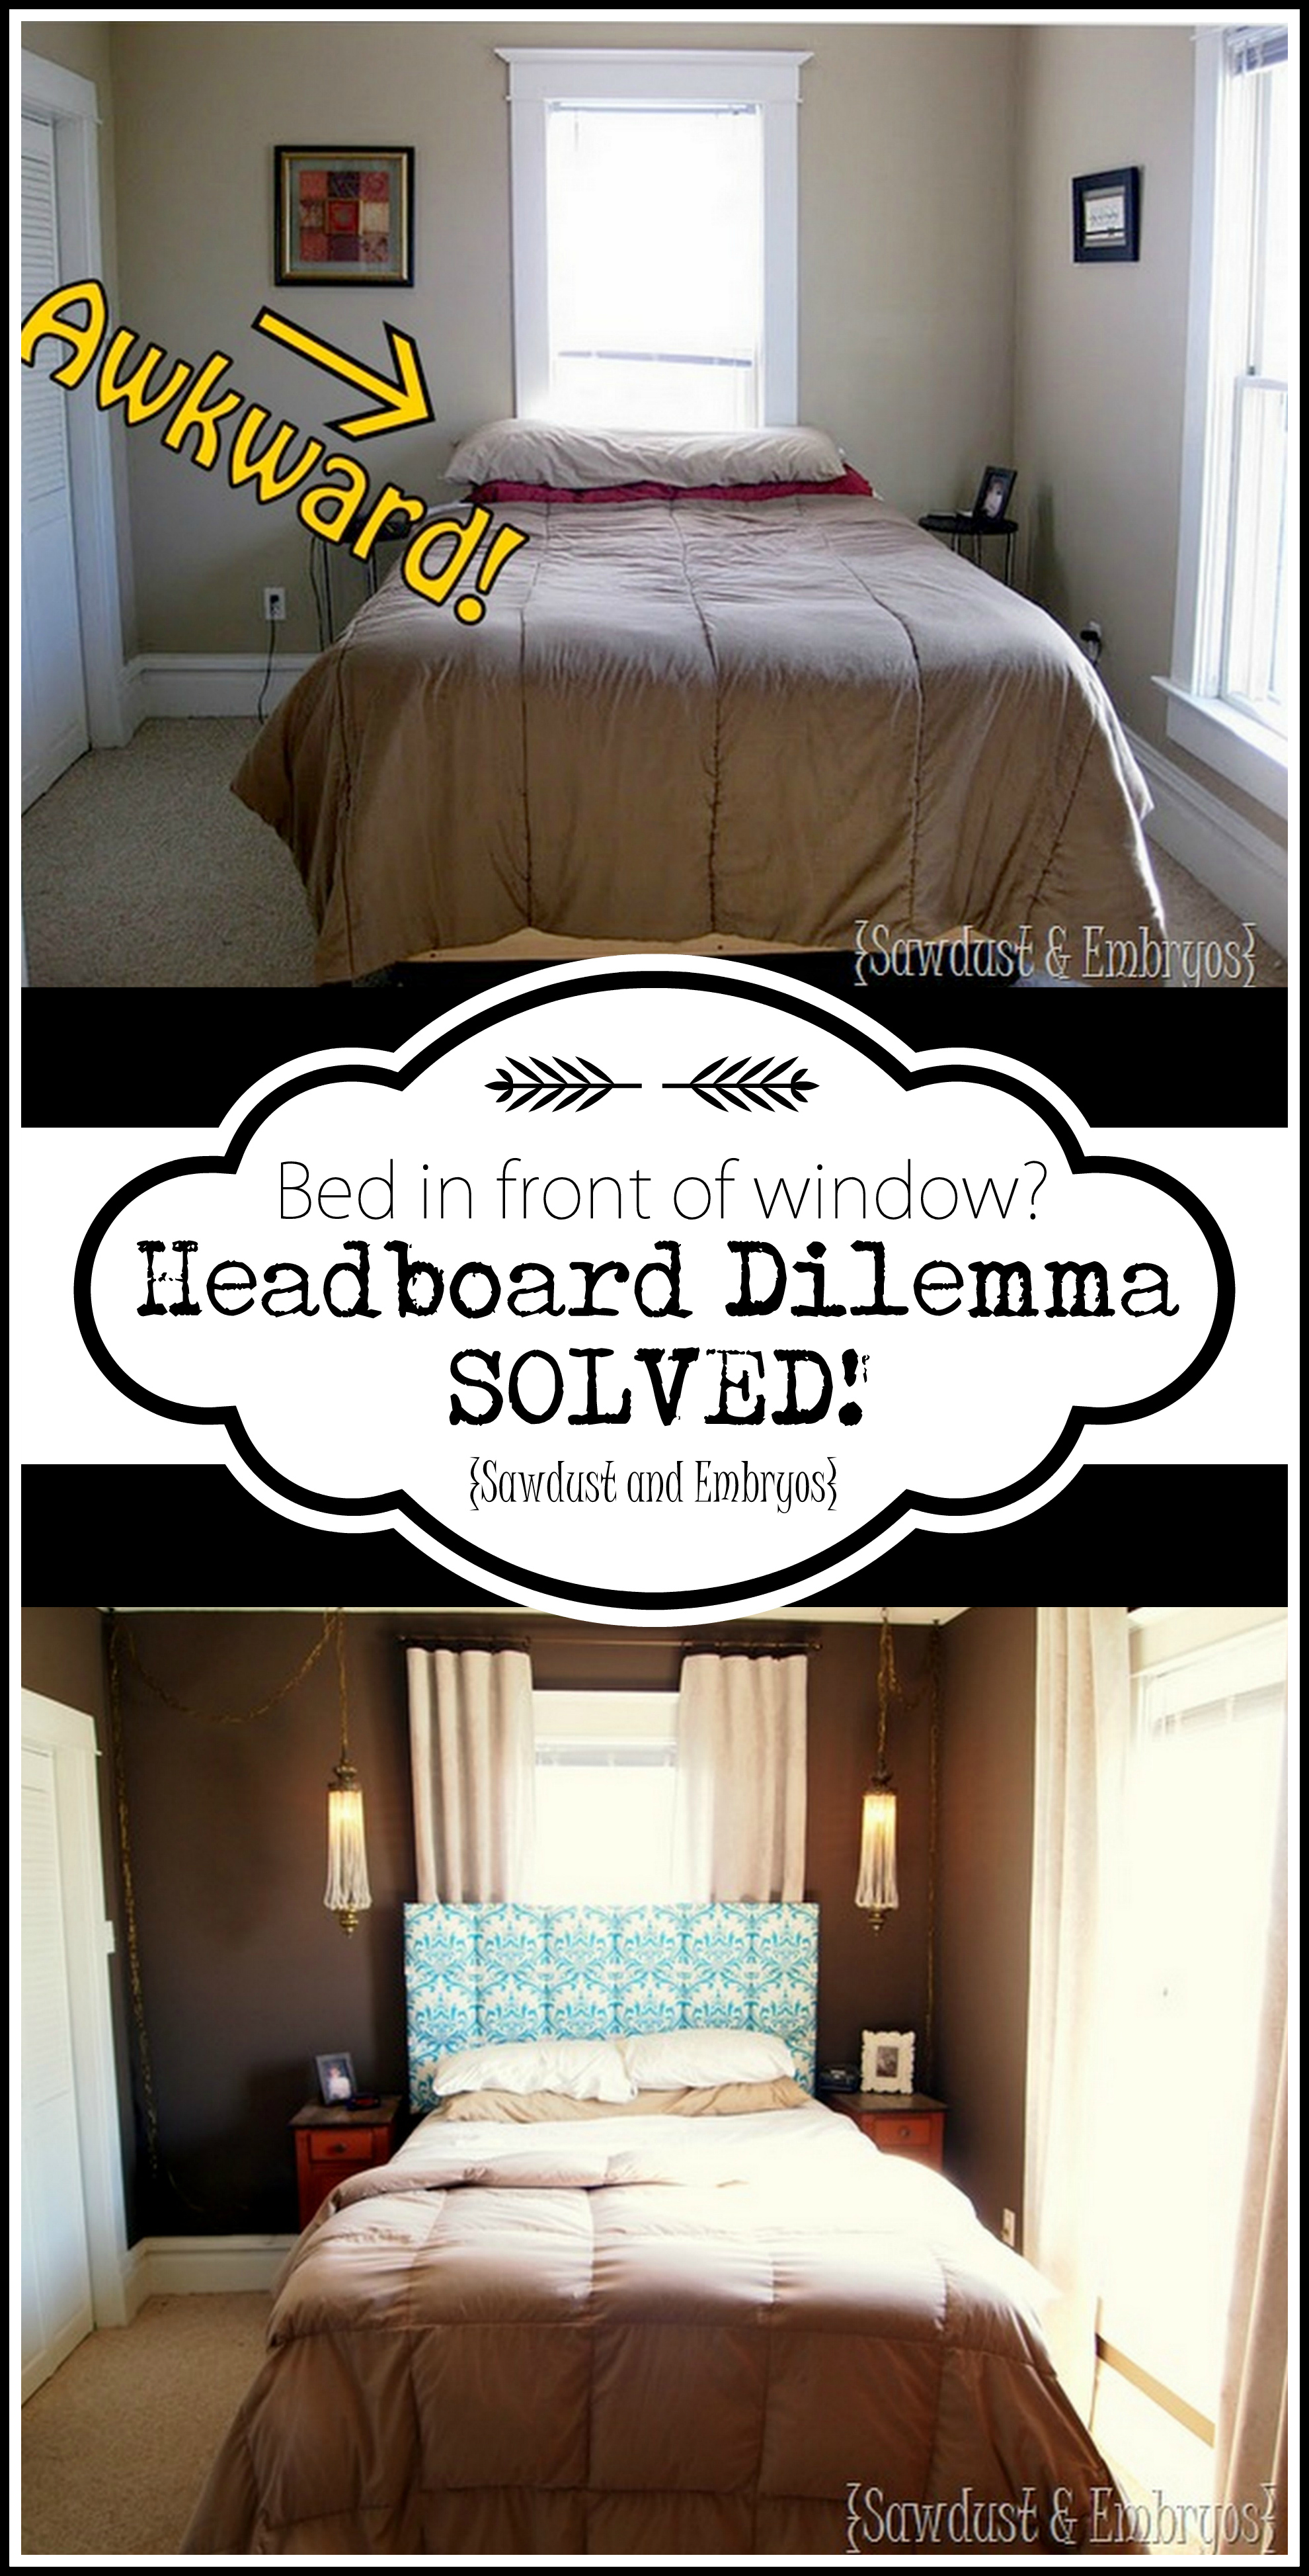 Installing your headboard to the wall over a window... with room for your curtains to hang! {Sawdust and Embryos}